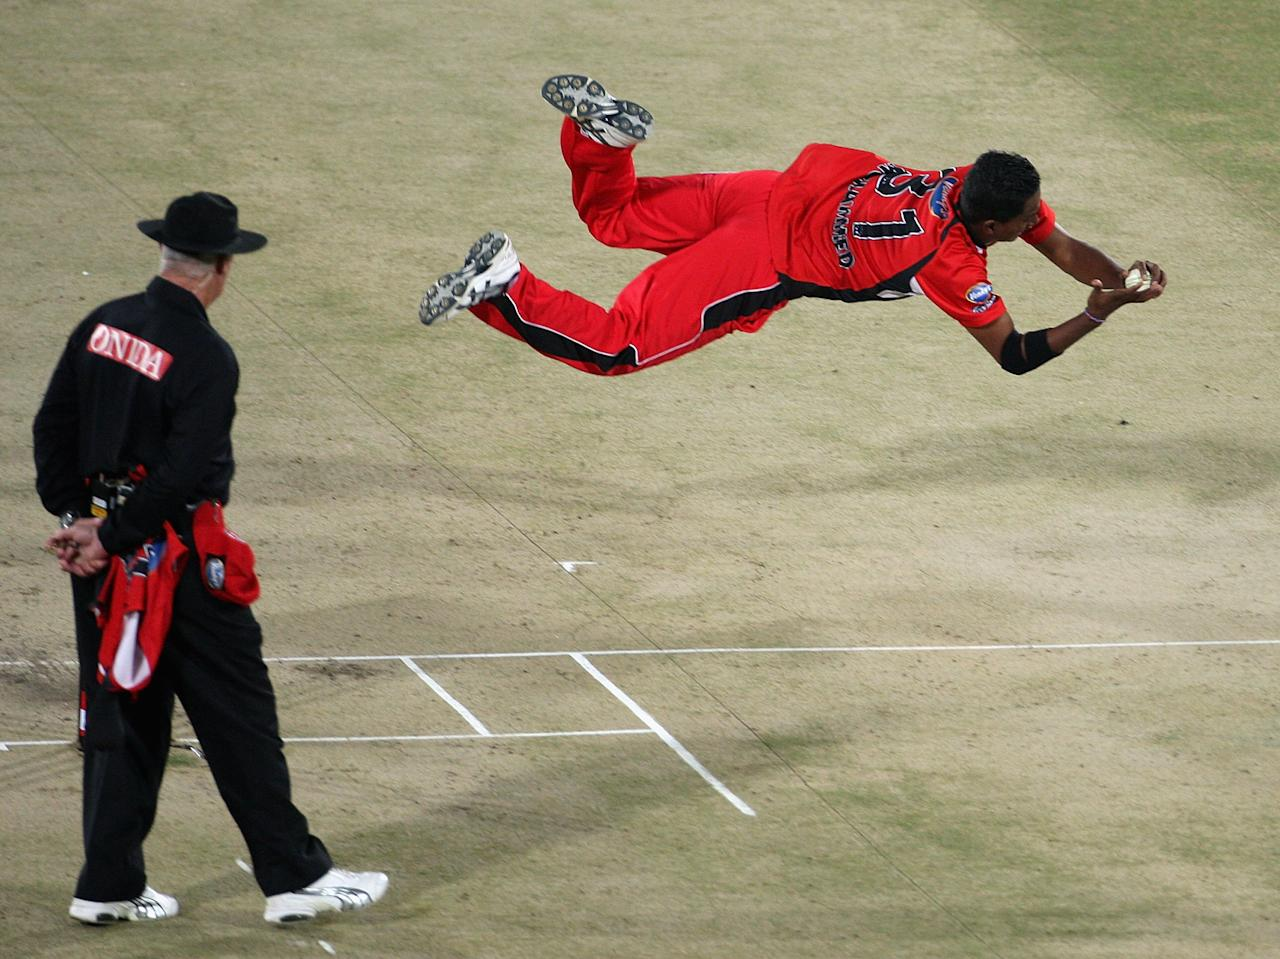 HYDERABAD, INDIA - OCTOBER 22:  Dave Mohammed of Trinidad takes a catch to dismiss Henry Davids of Cobras during the Airtel Champions League Twenty20 Second Semi Final between Cape Cobras and Trinidad and Tobago at the Rajiv Gandhi International Stadium on October 22, 2009 in Hyderabad, India.  (Photo by Hamish Blair - GCV/GCV via Getty Images)